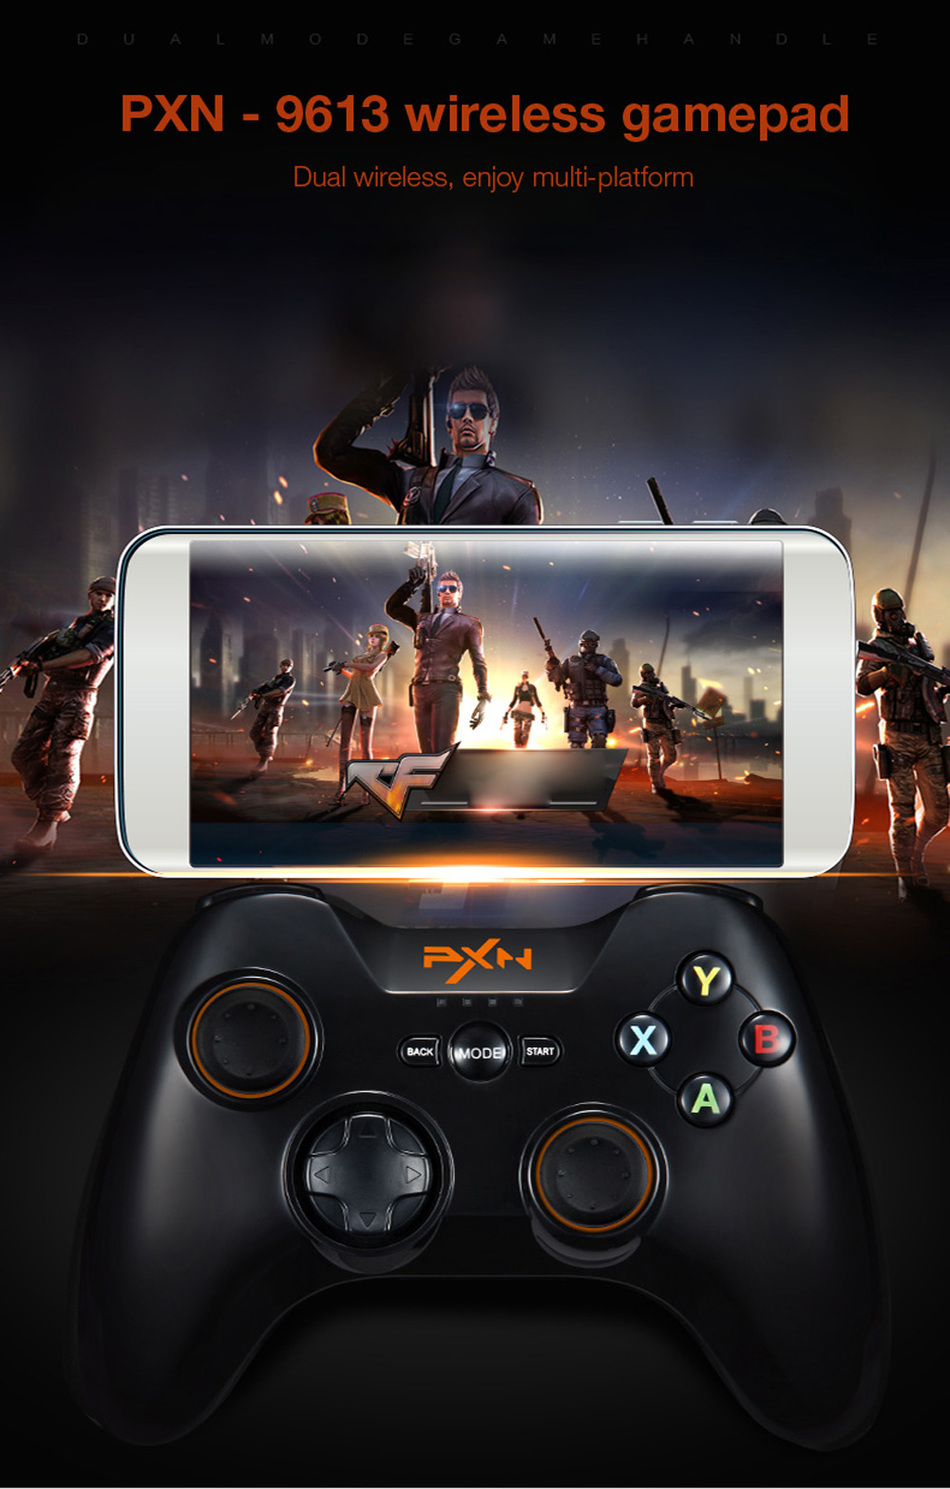 PXN - 9613 Wireless Bluetooth Game Controller Portable Handle Bracket Gamepad for PC Tablet Android Smartphone TV Box pk 9603